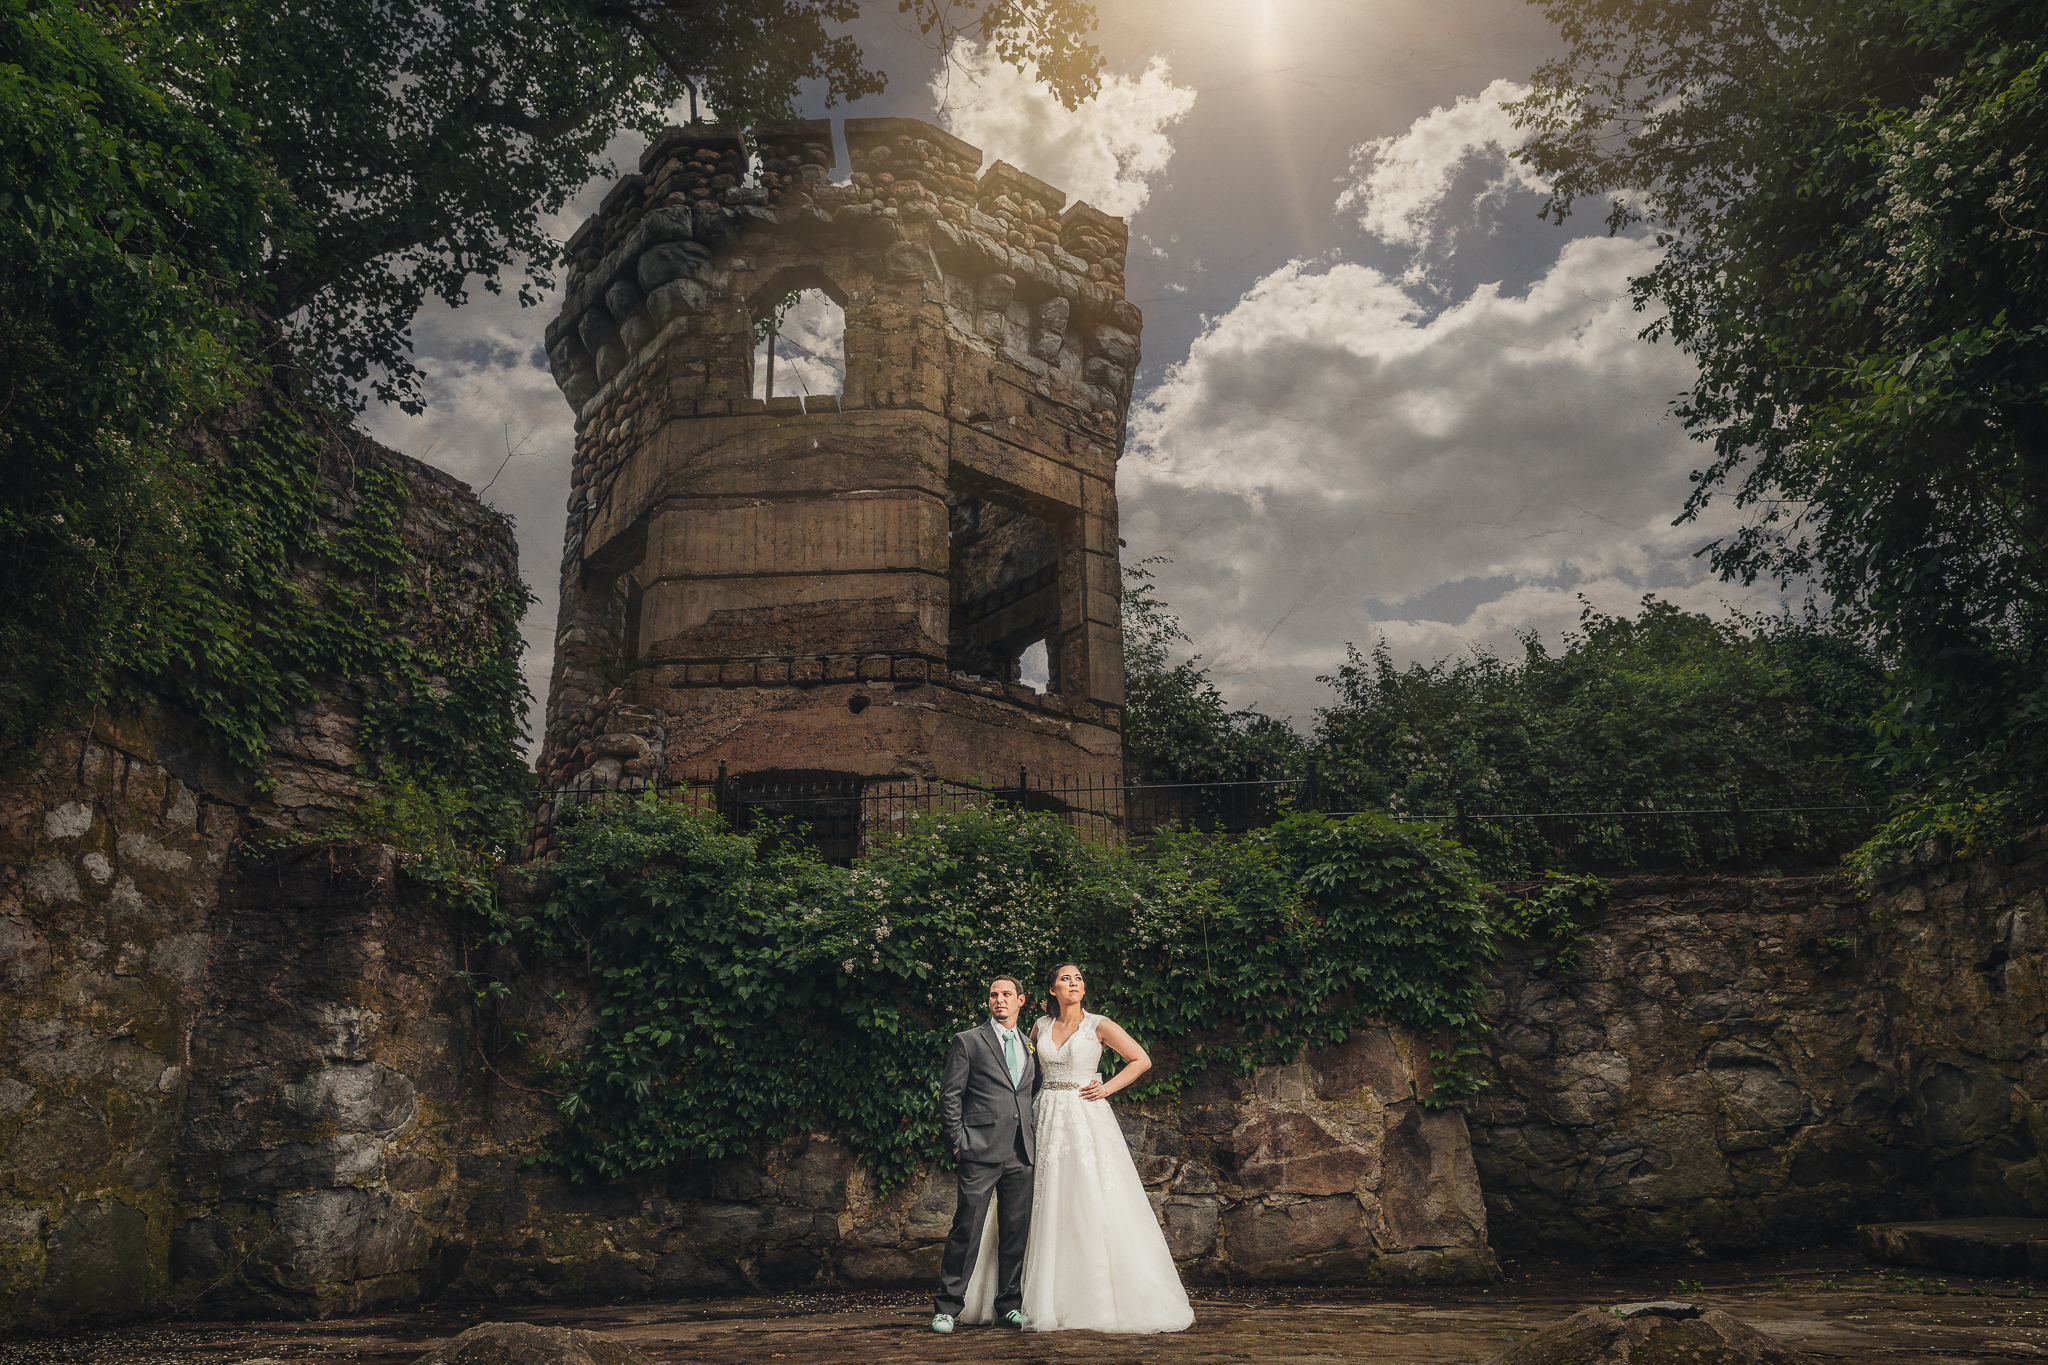 epic-castle-with-bride-groom-at-gibbet-hill